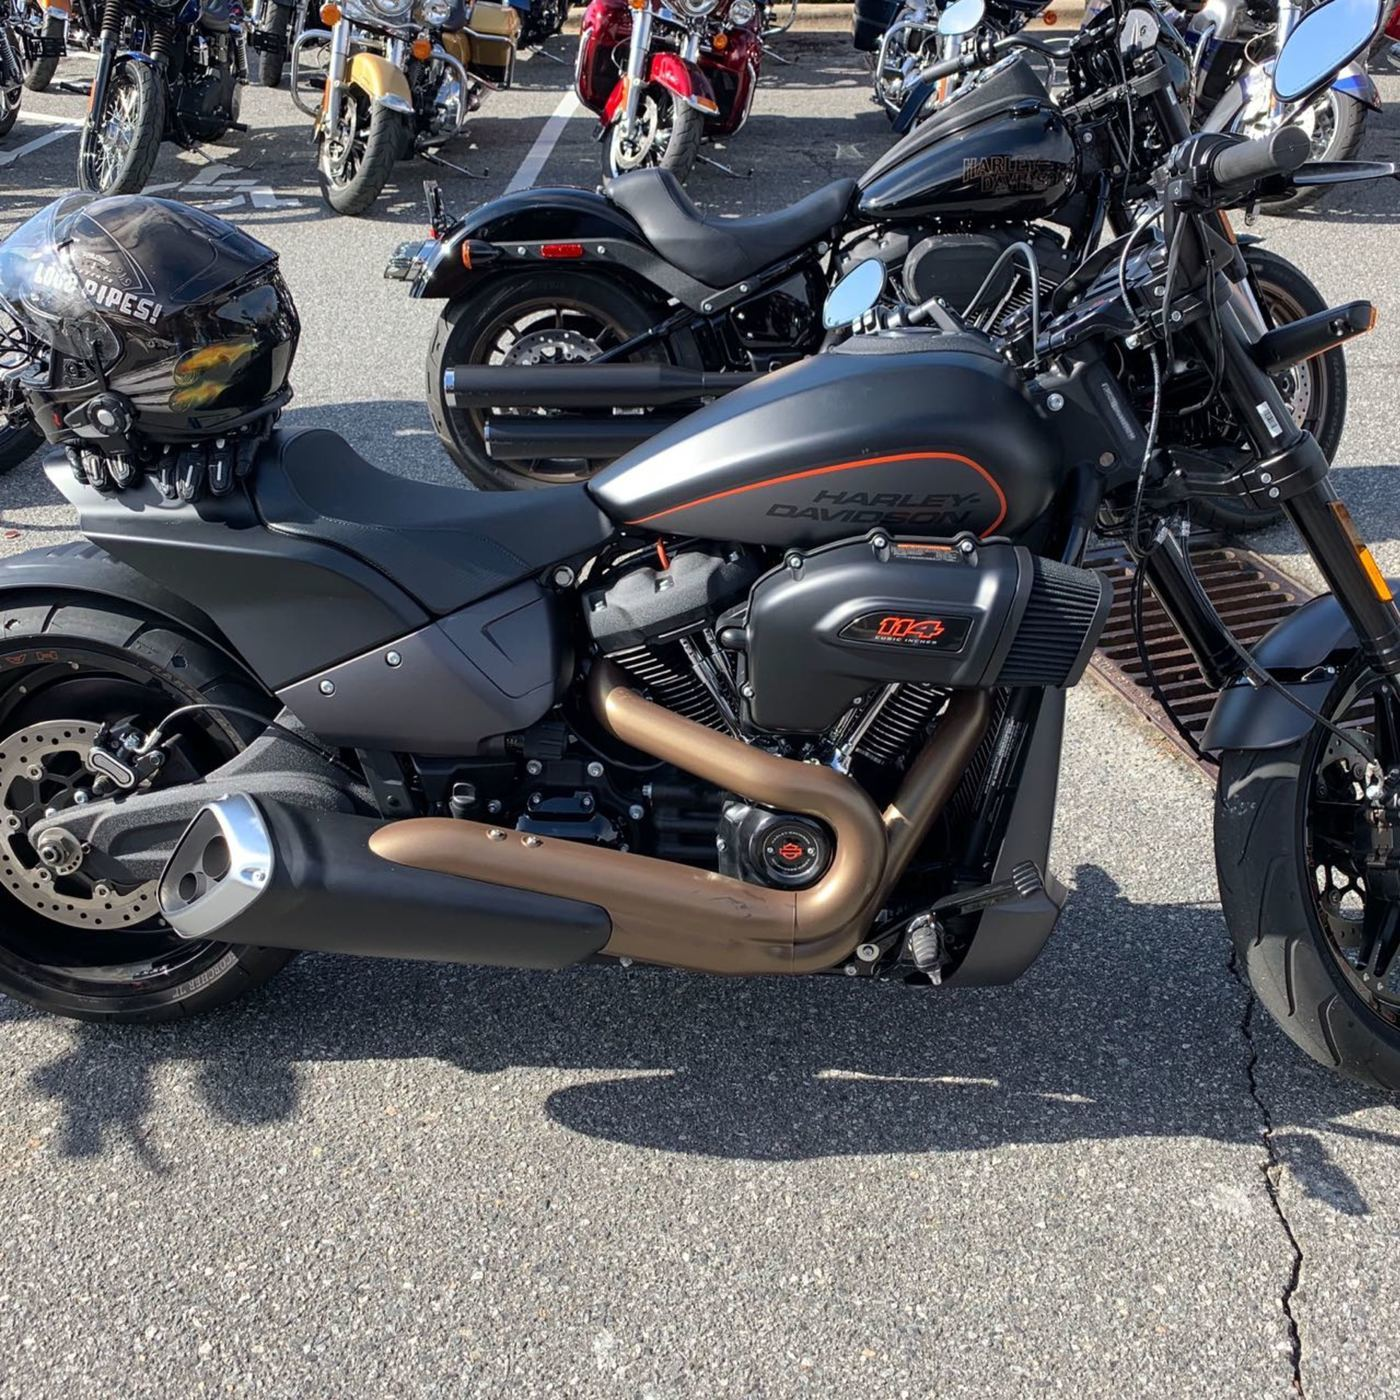 Loud Pipes!: 171: Stealing EICMA Thunder